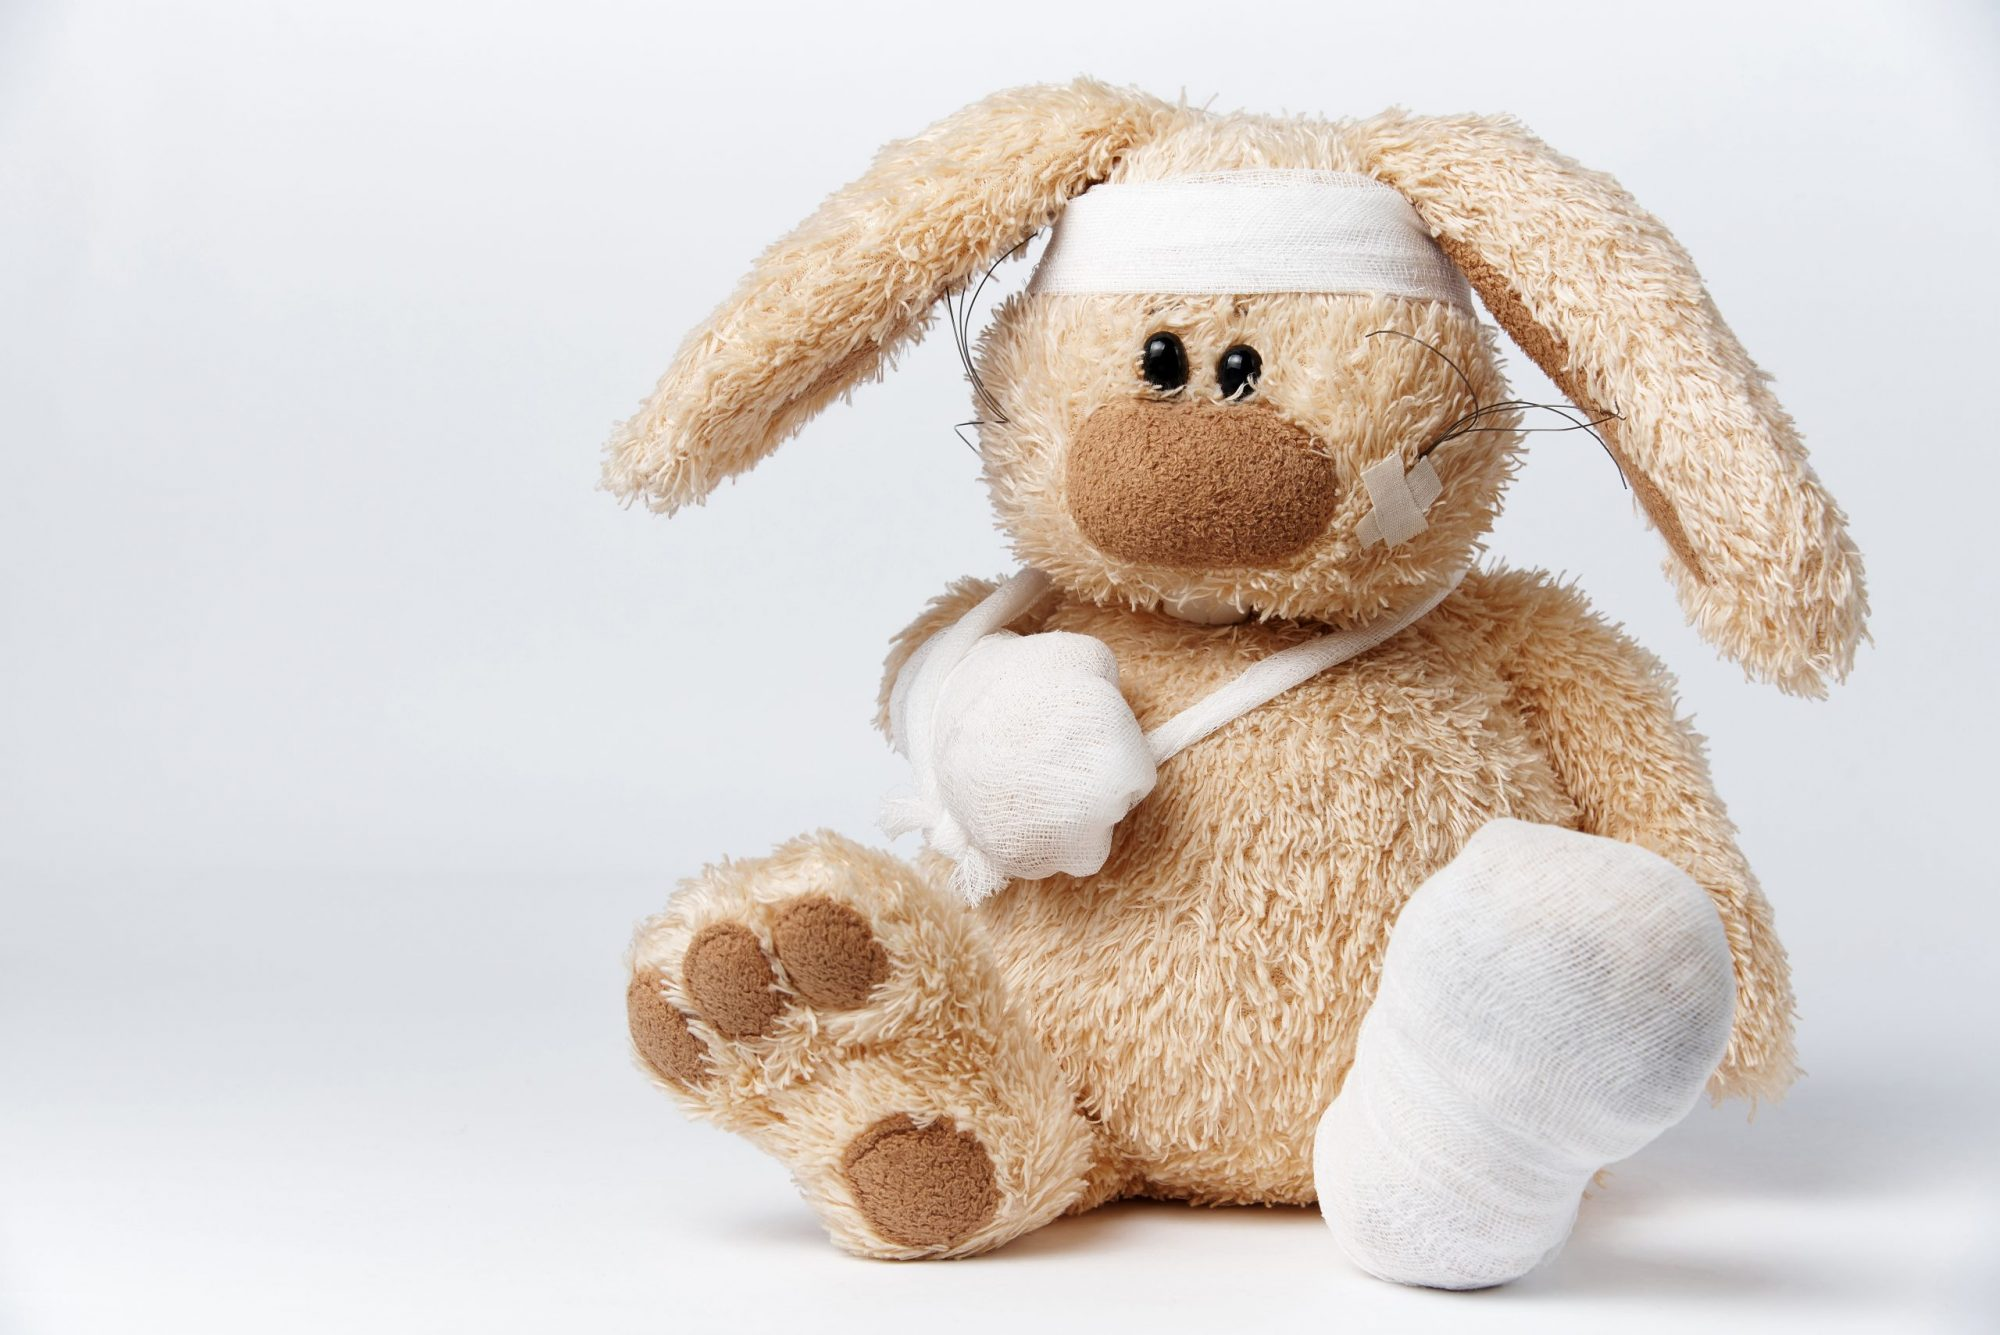 This is a picture of Cute sick bandaged hare on a white background for a post called What Competitive Intelligence mishaps can reduce the value of your operation by Octopus is a Competitive Intelligence Competitor Analysis & Strategy consulting firm focused on creating certainty, insight, competitive advantage & significant growth